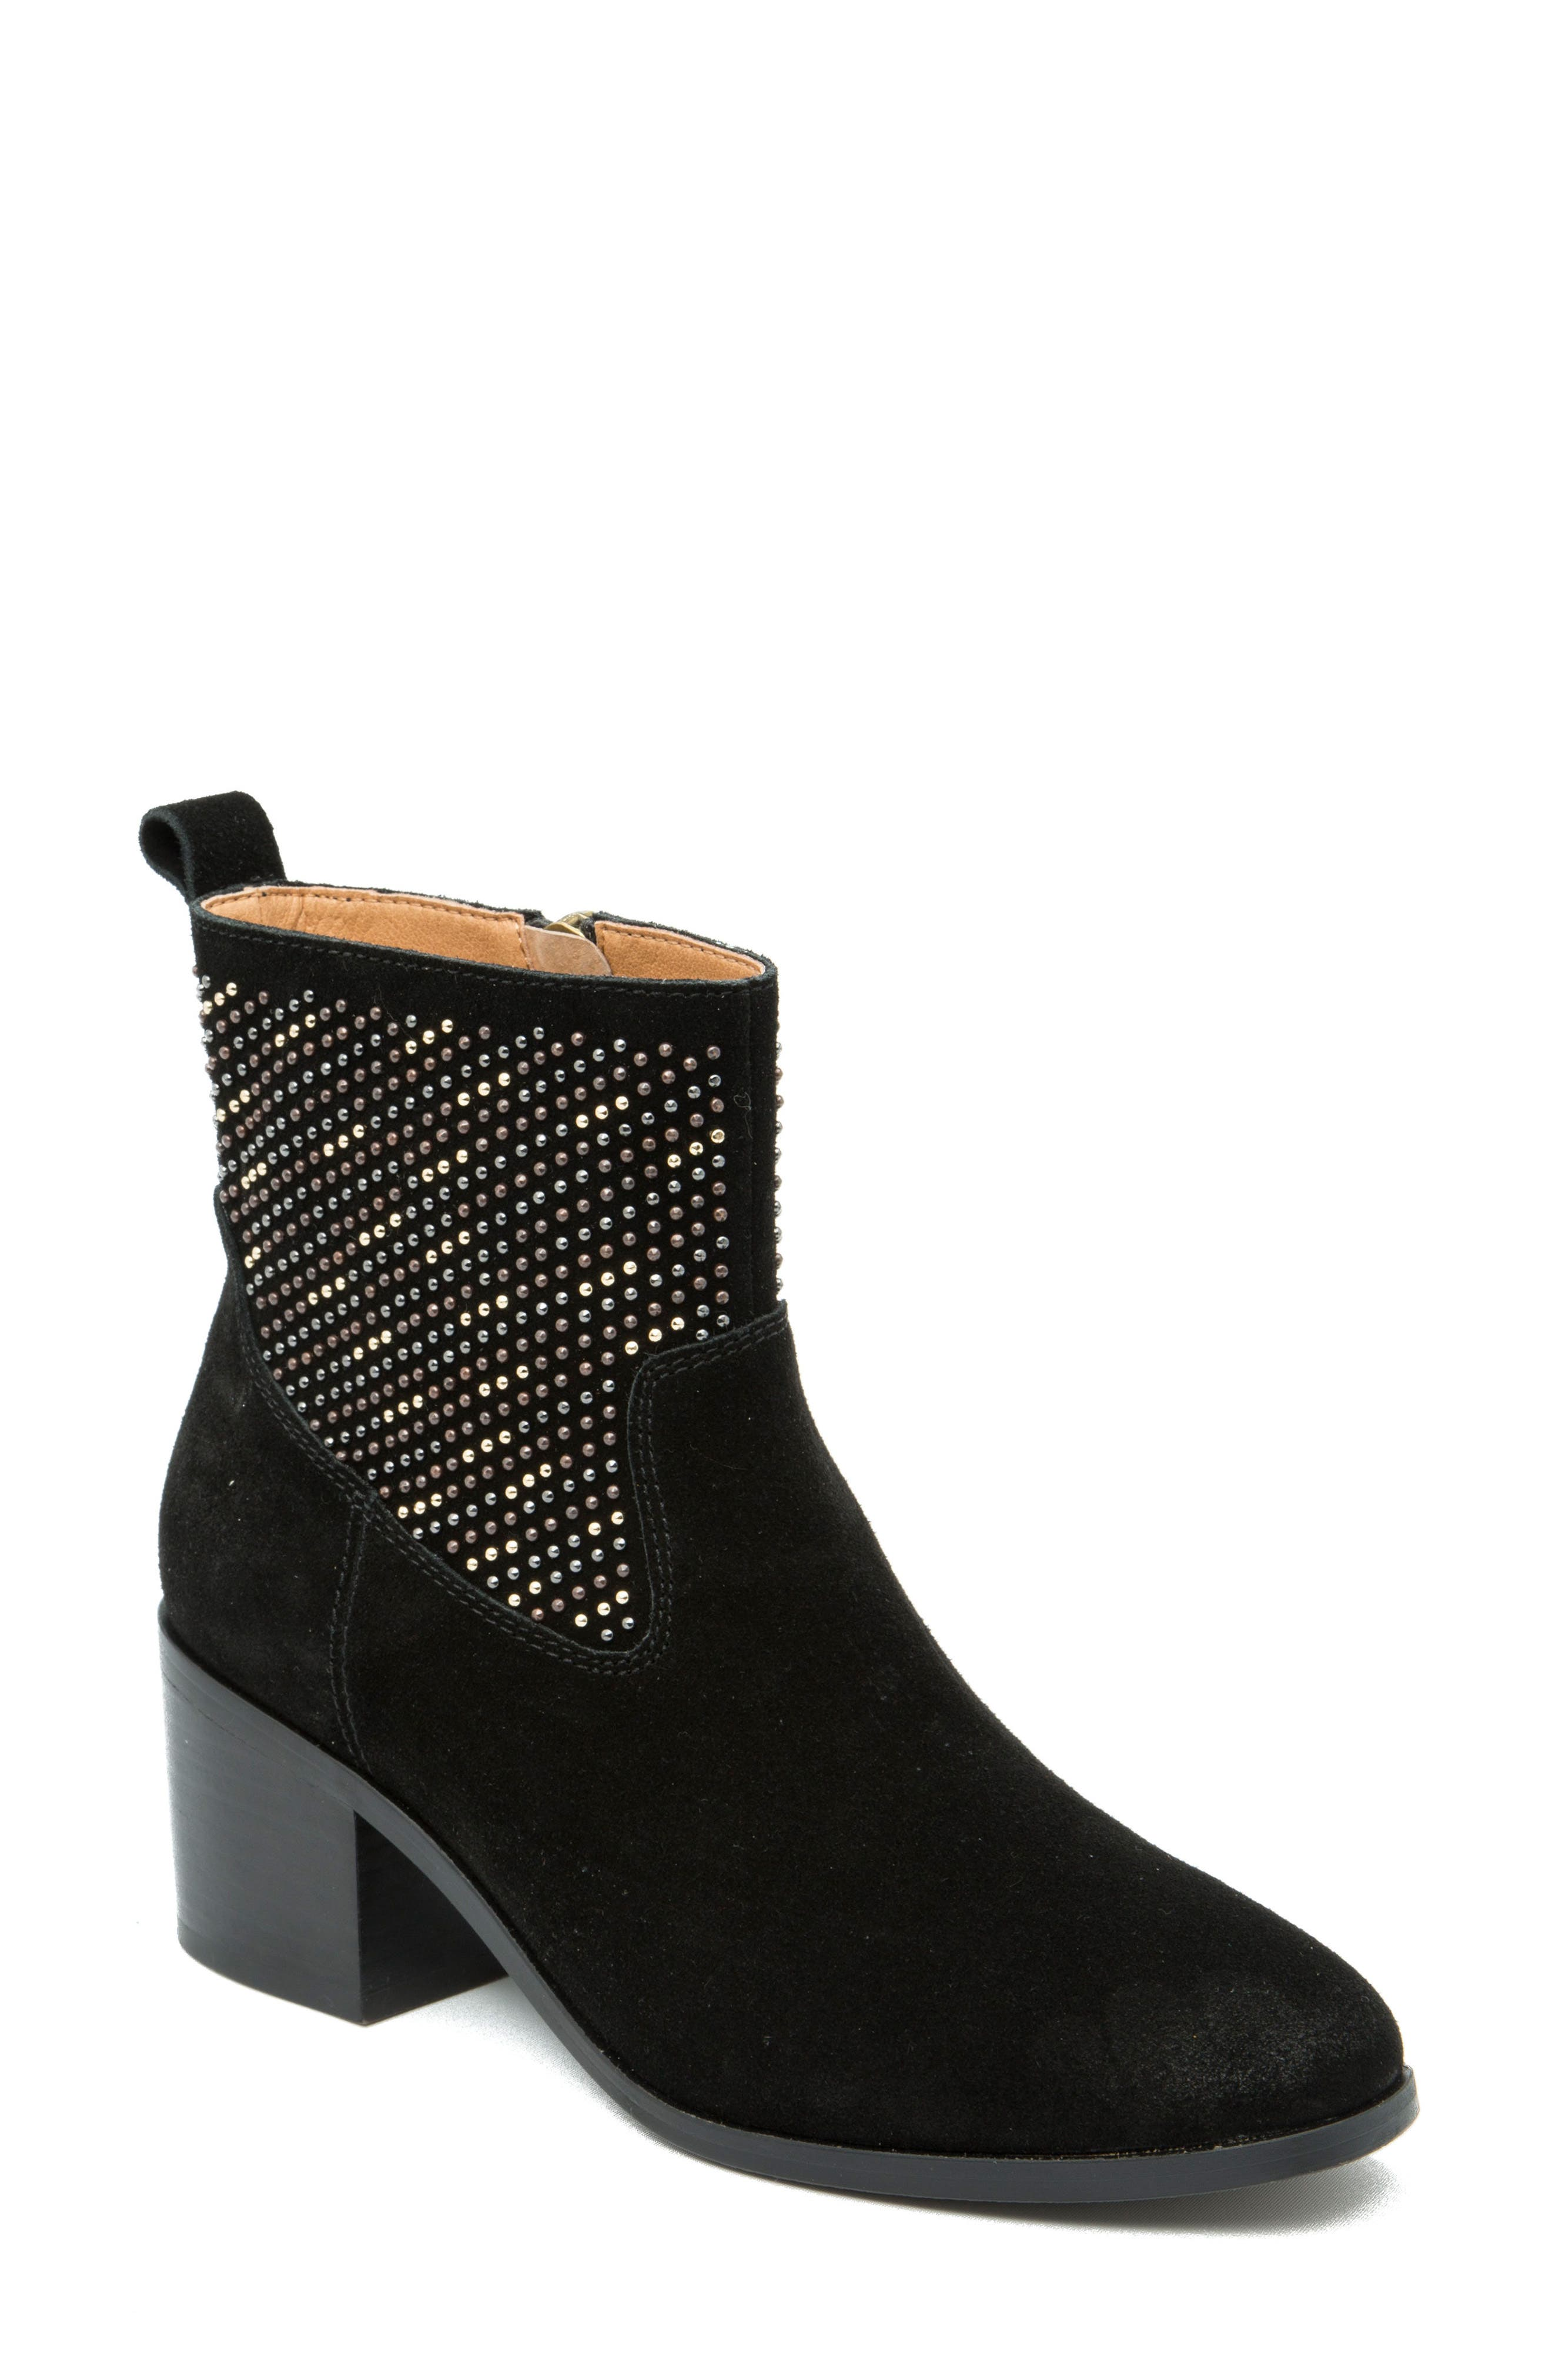 Dosa Studded Bootie,                             Main thumbnail 1, color,                             Black